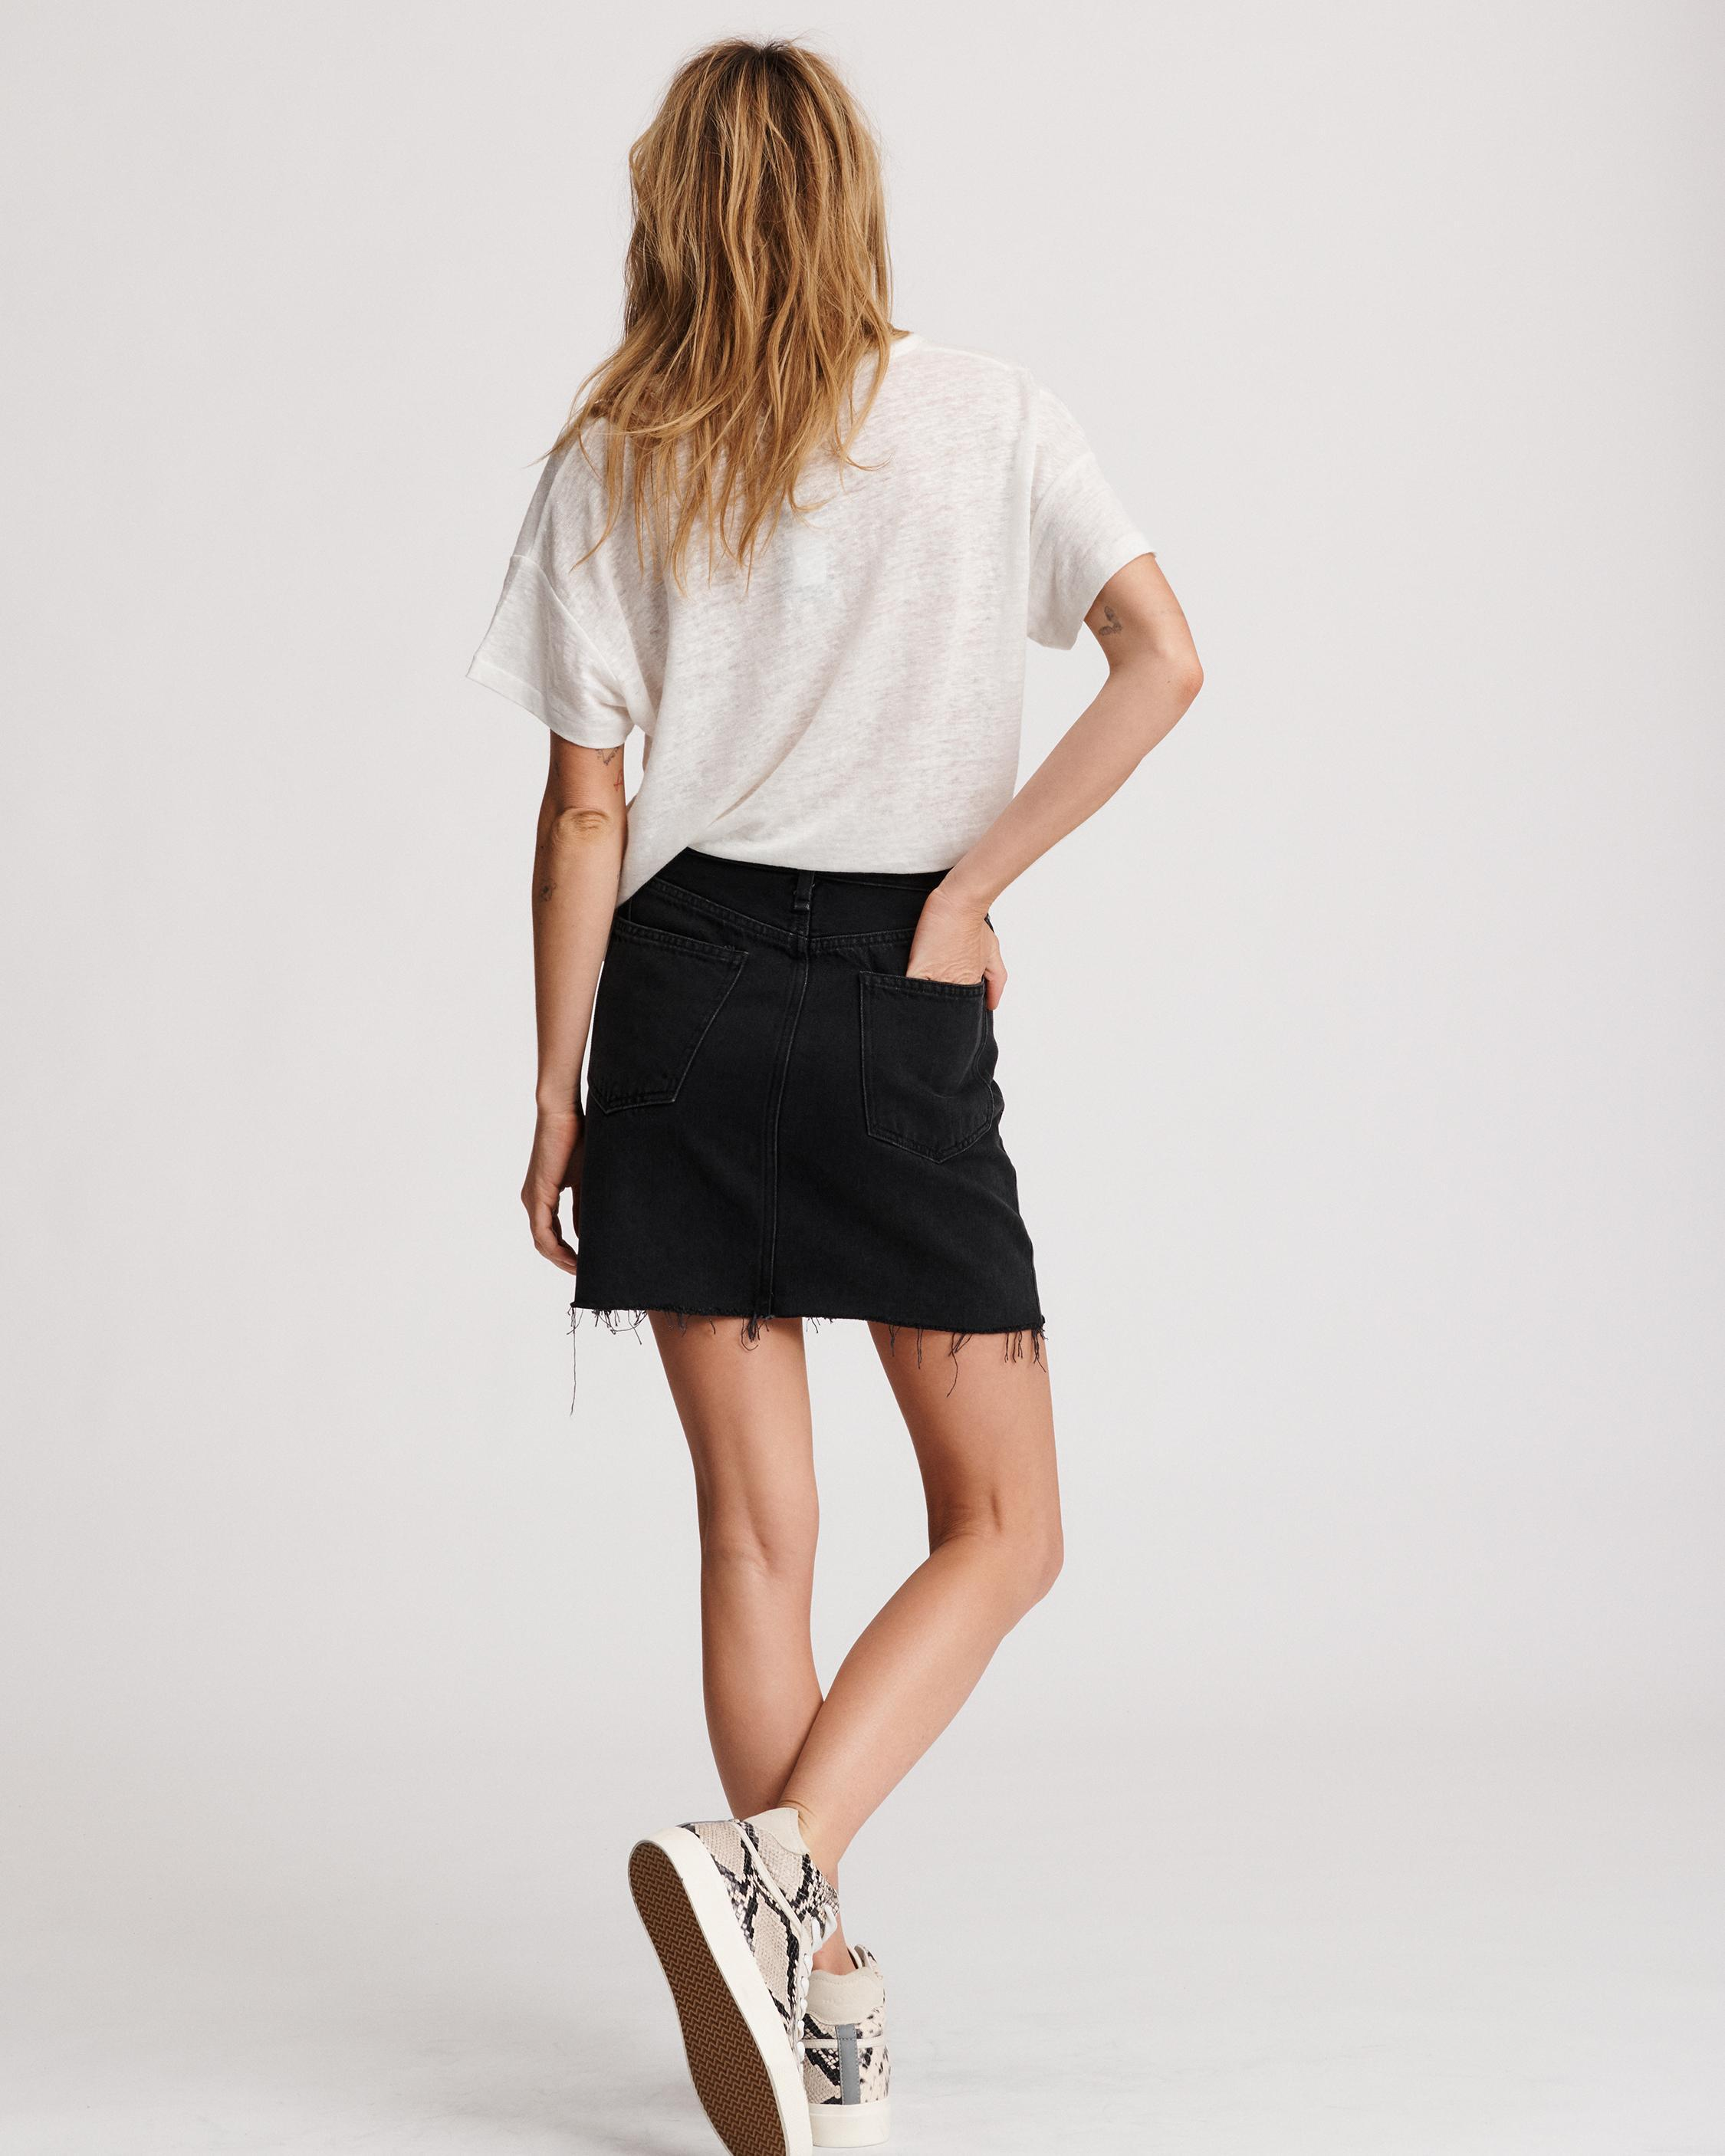 7cfeaa74b ... Anna Skirt - Lyst. Visit Rag & Bone. Tap to visit site